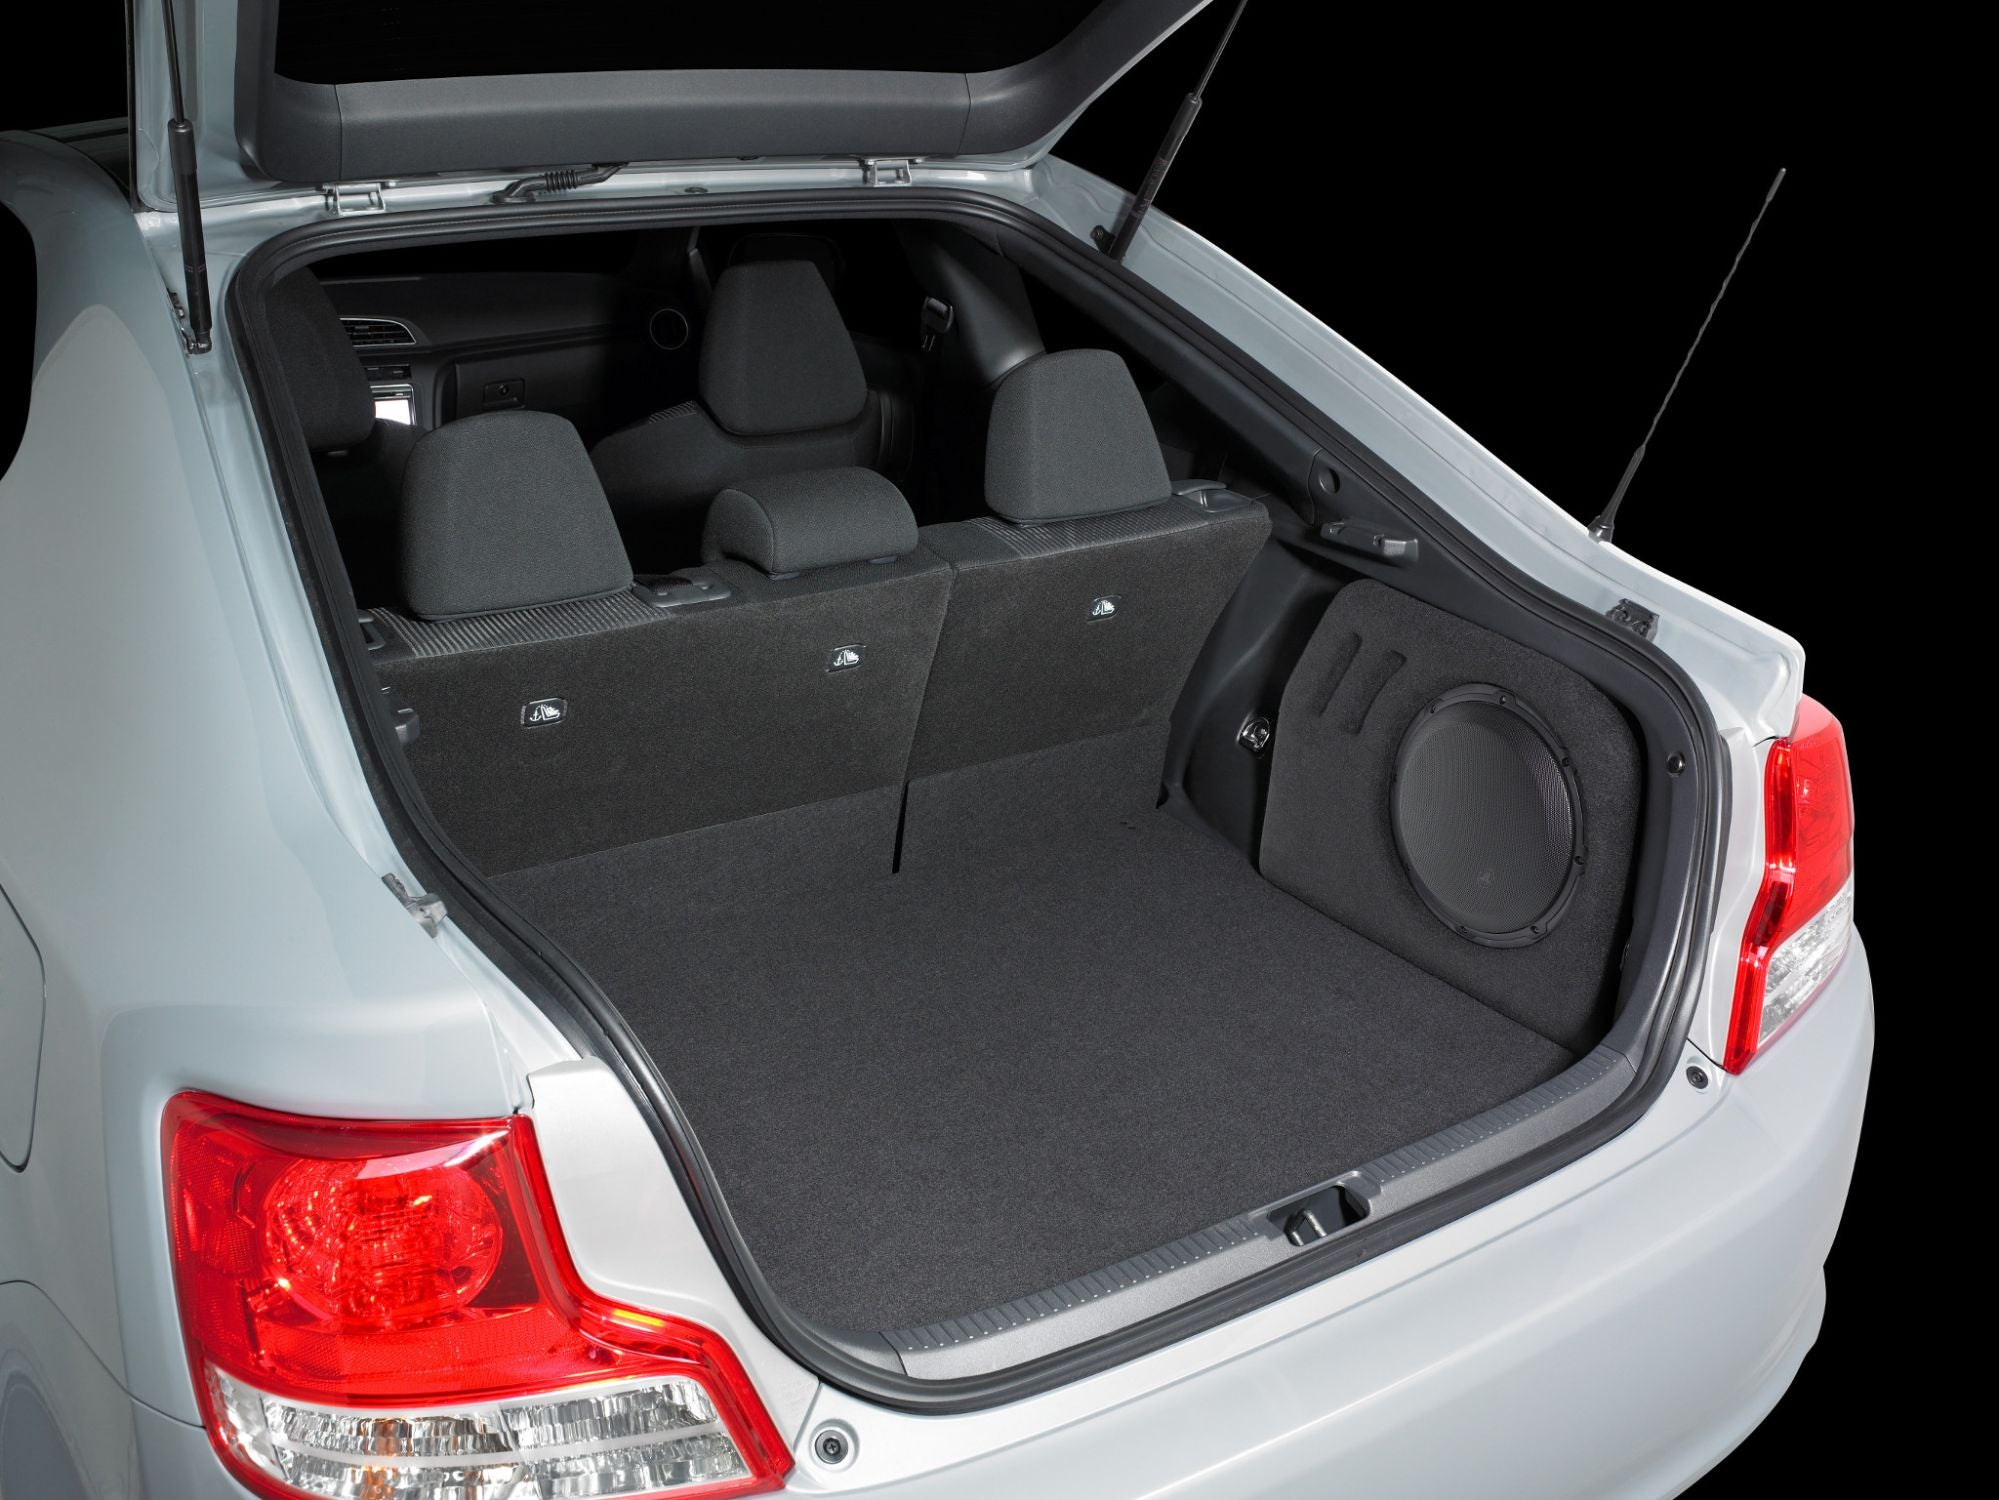 SB-SC-TCG2-10W3v3 Stealthbox Installed in Vehicle